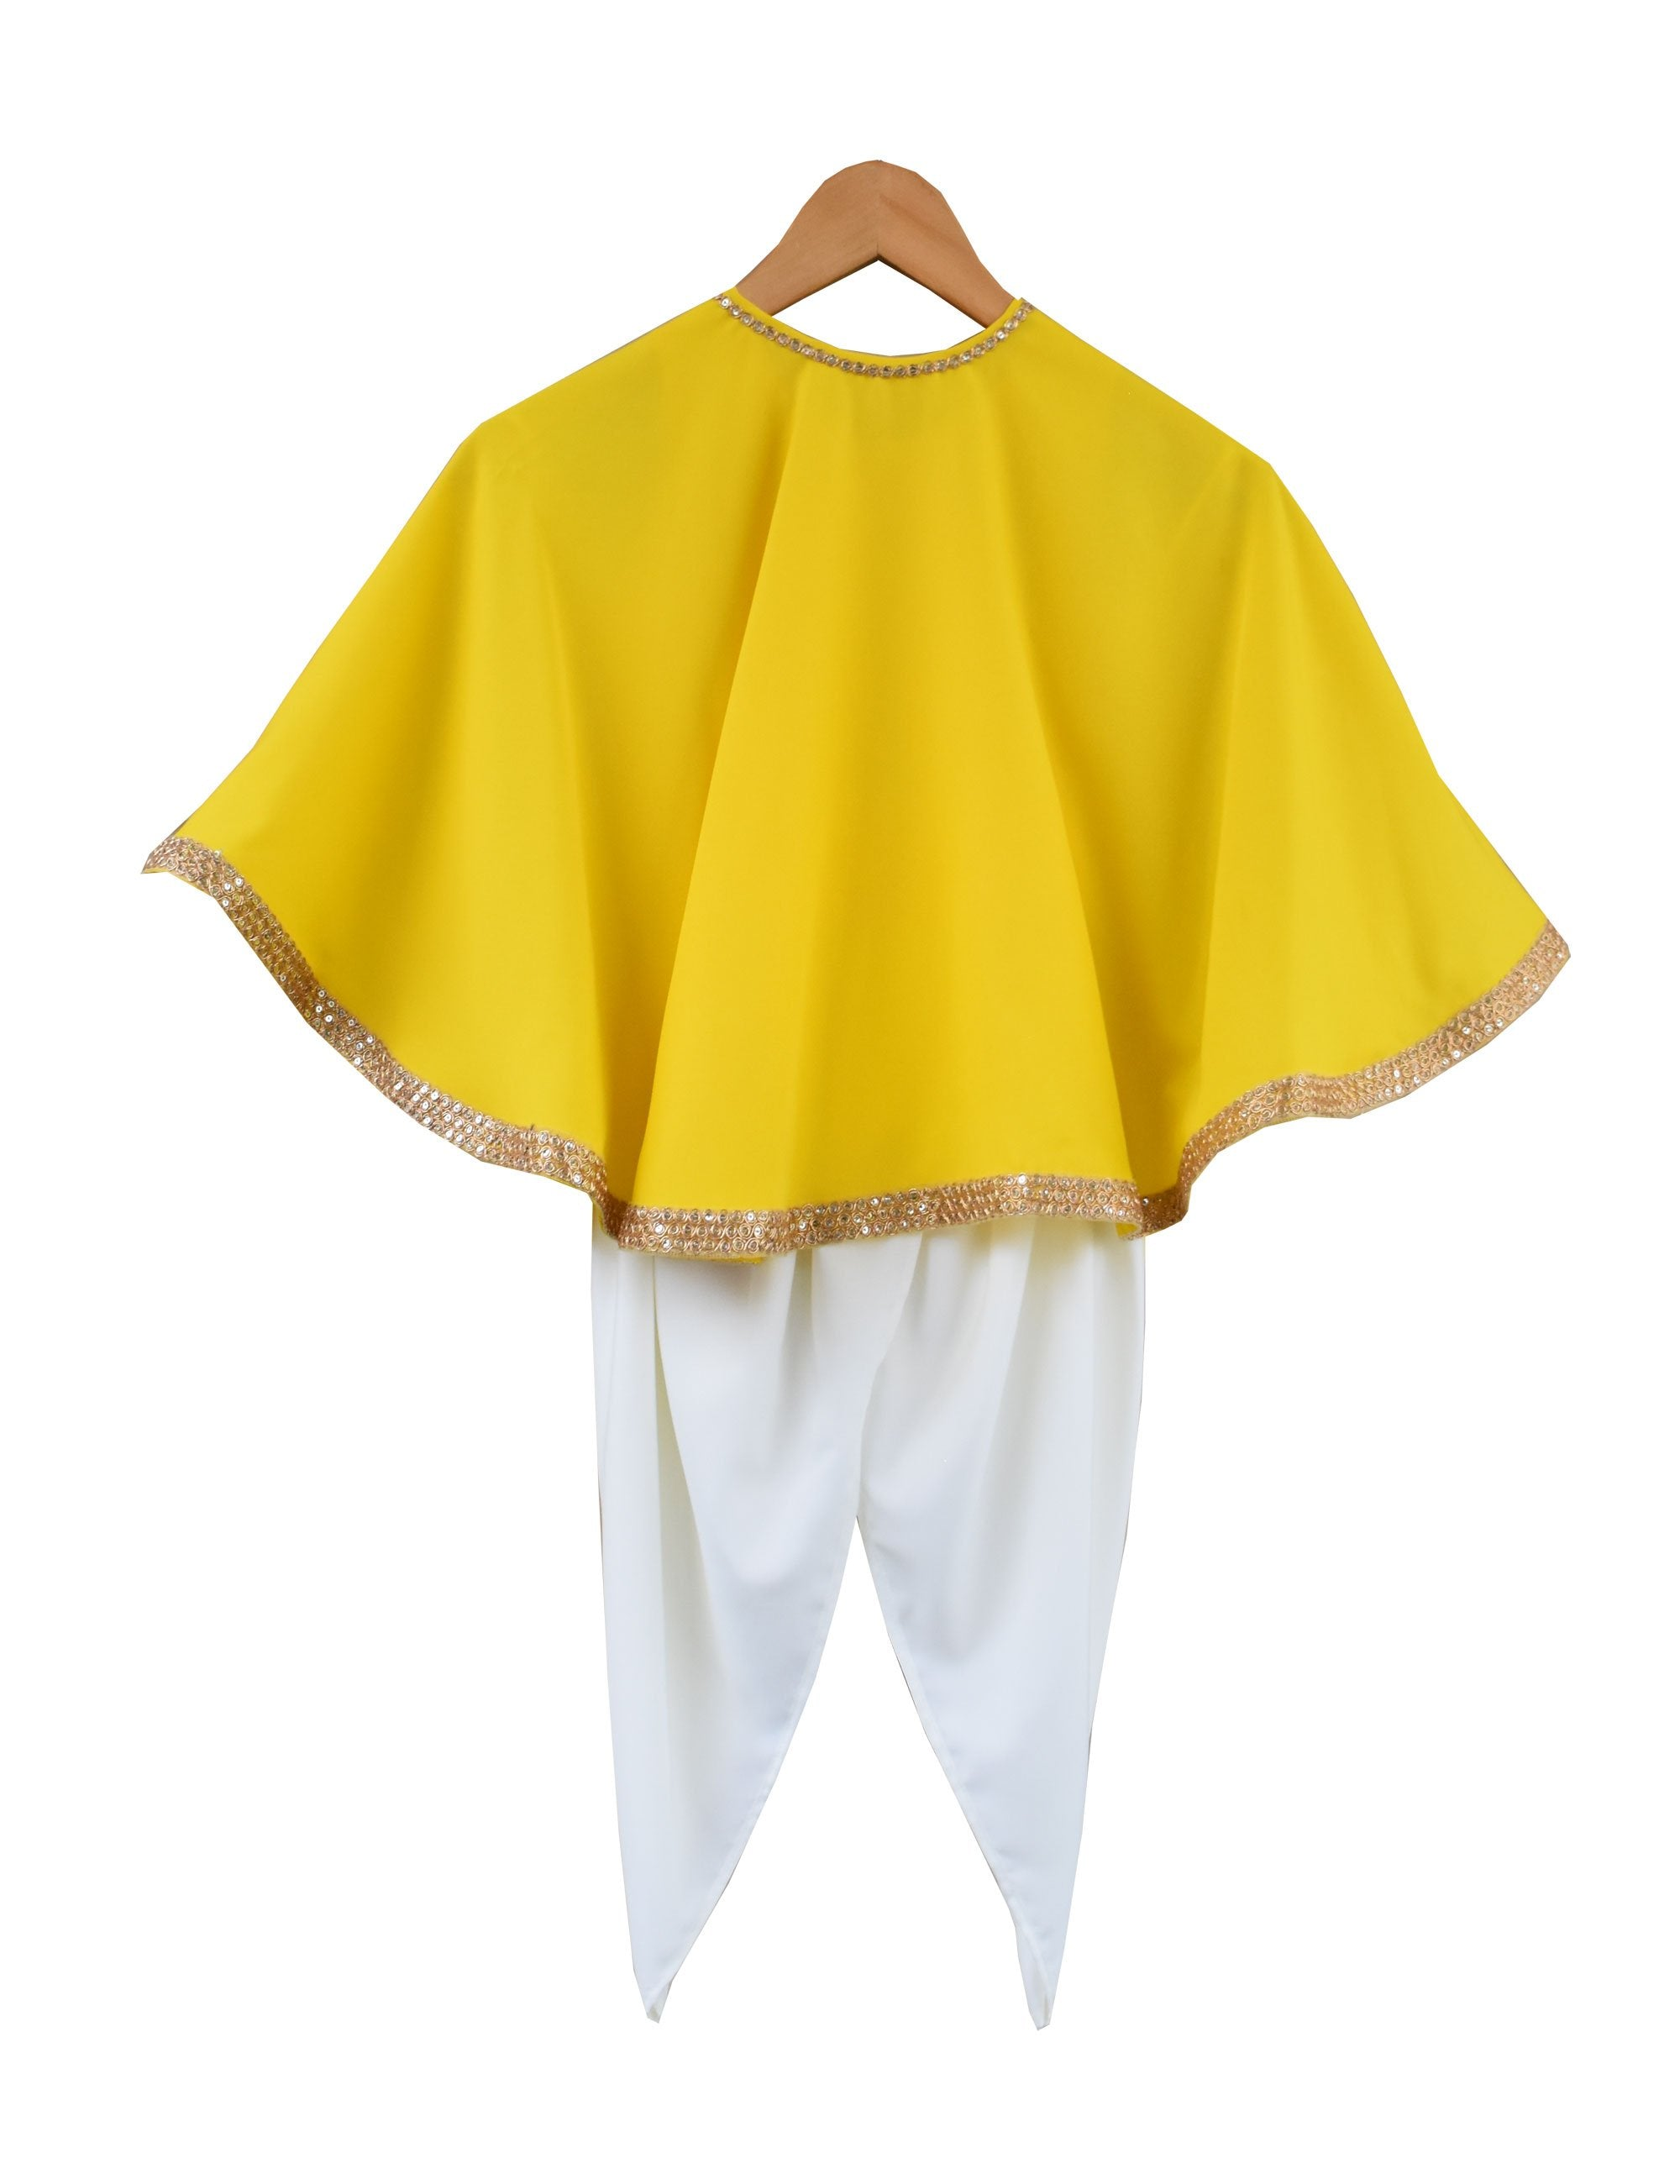 Crape Dhoti with Ponchu in Yellow Colour